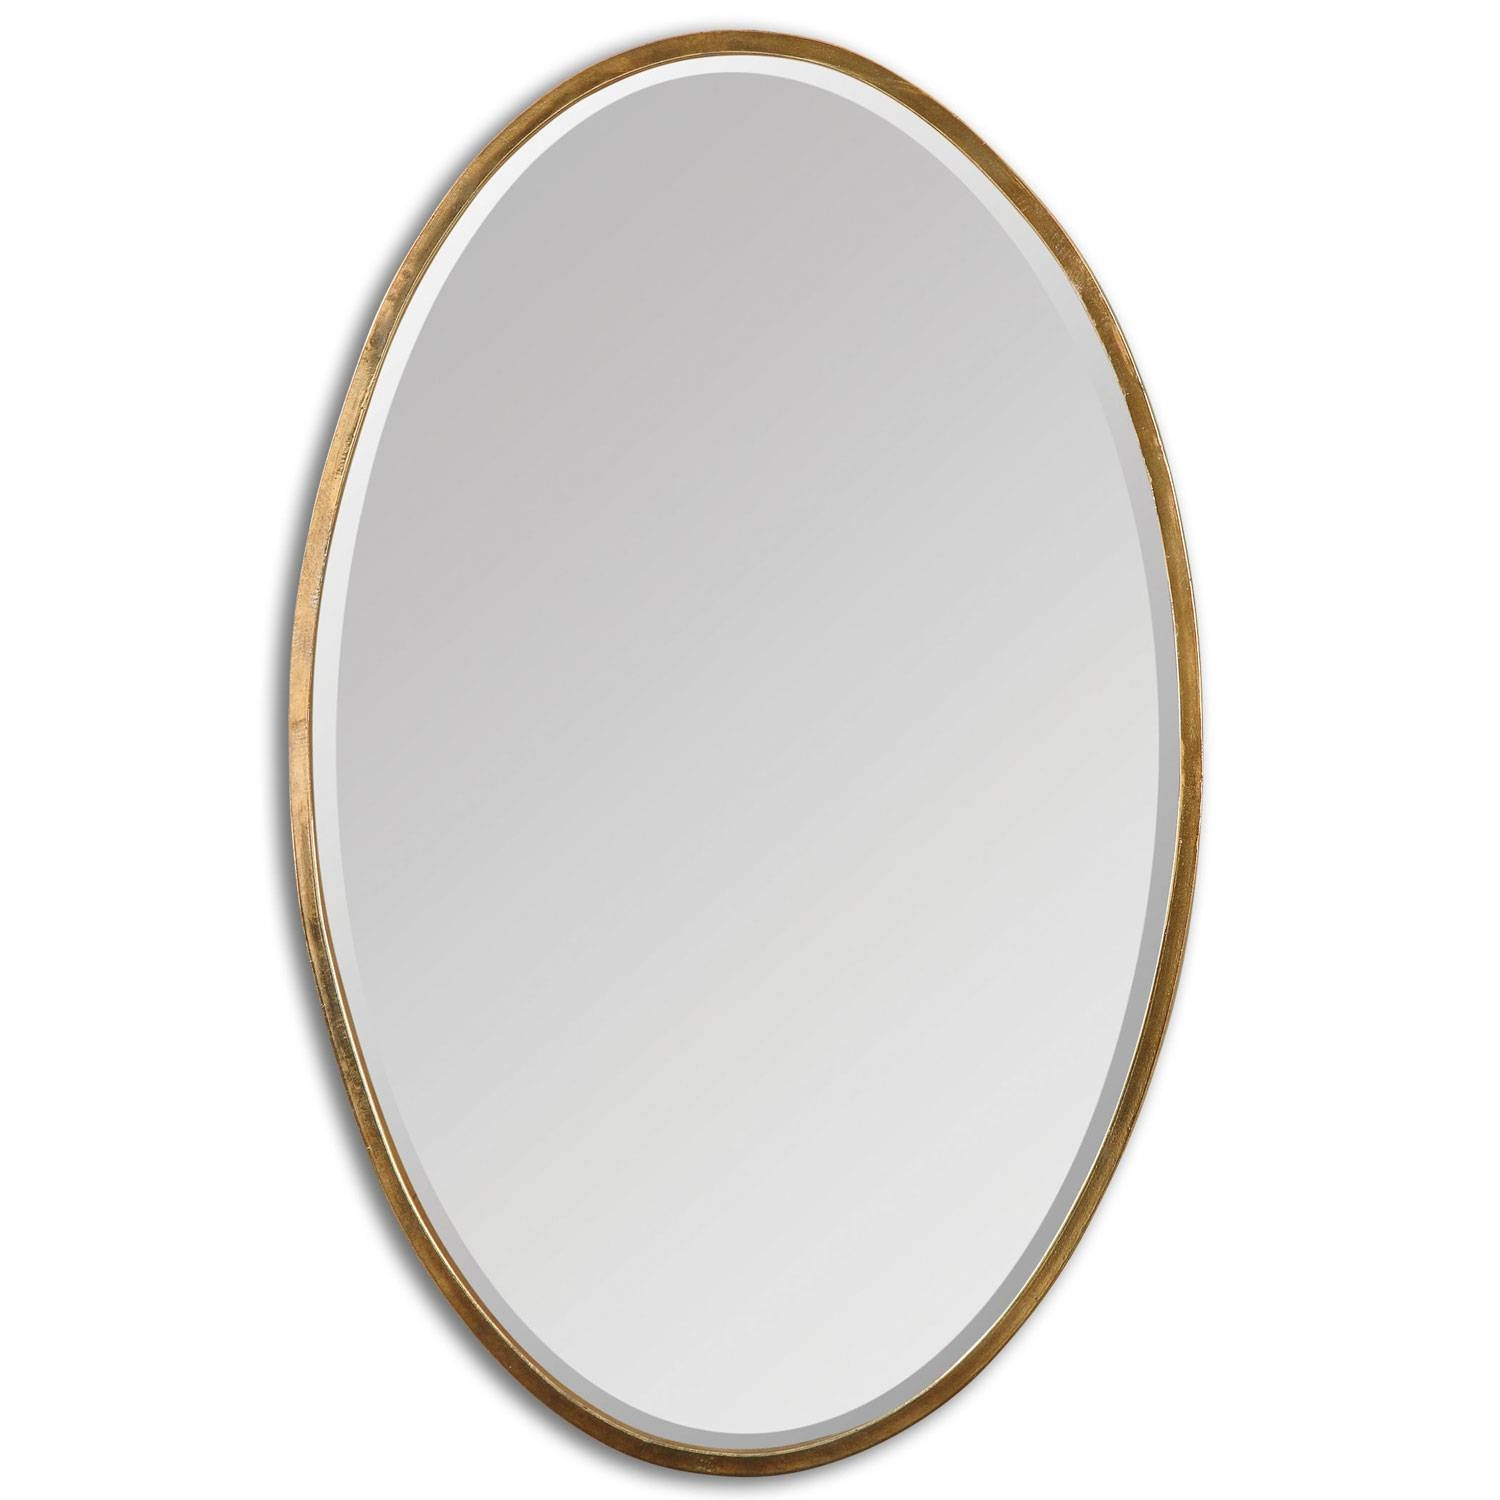 Herleva Oval Antique Gold Oval Mirror Uttermost Wall Mirror Throughout Large Antique Gold Mirrors (View 15 of 25)